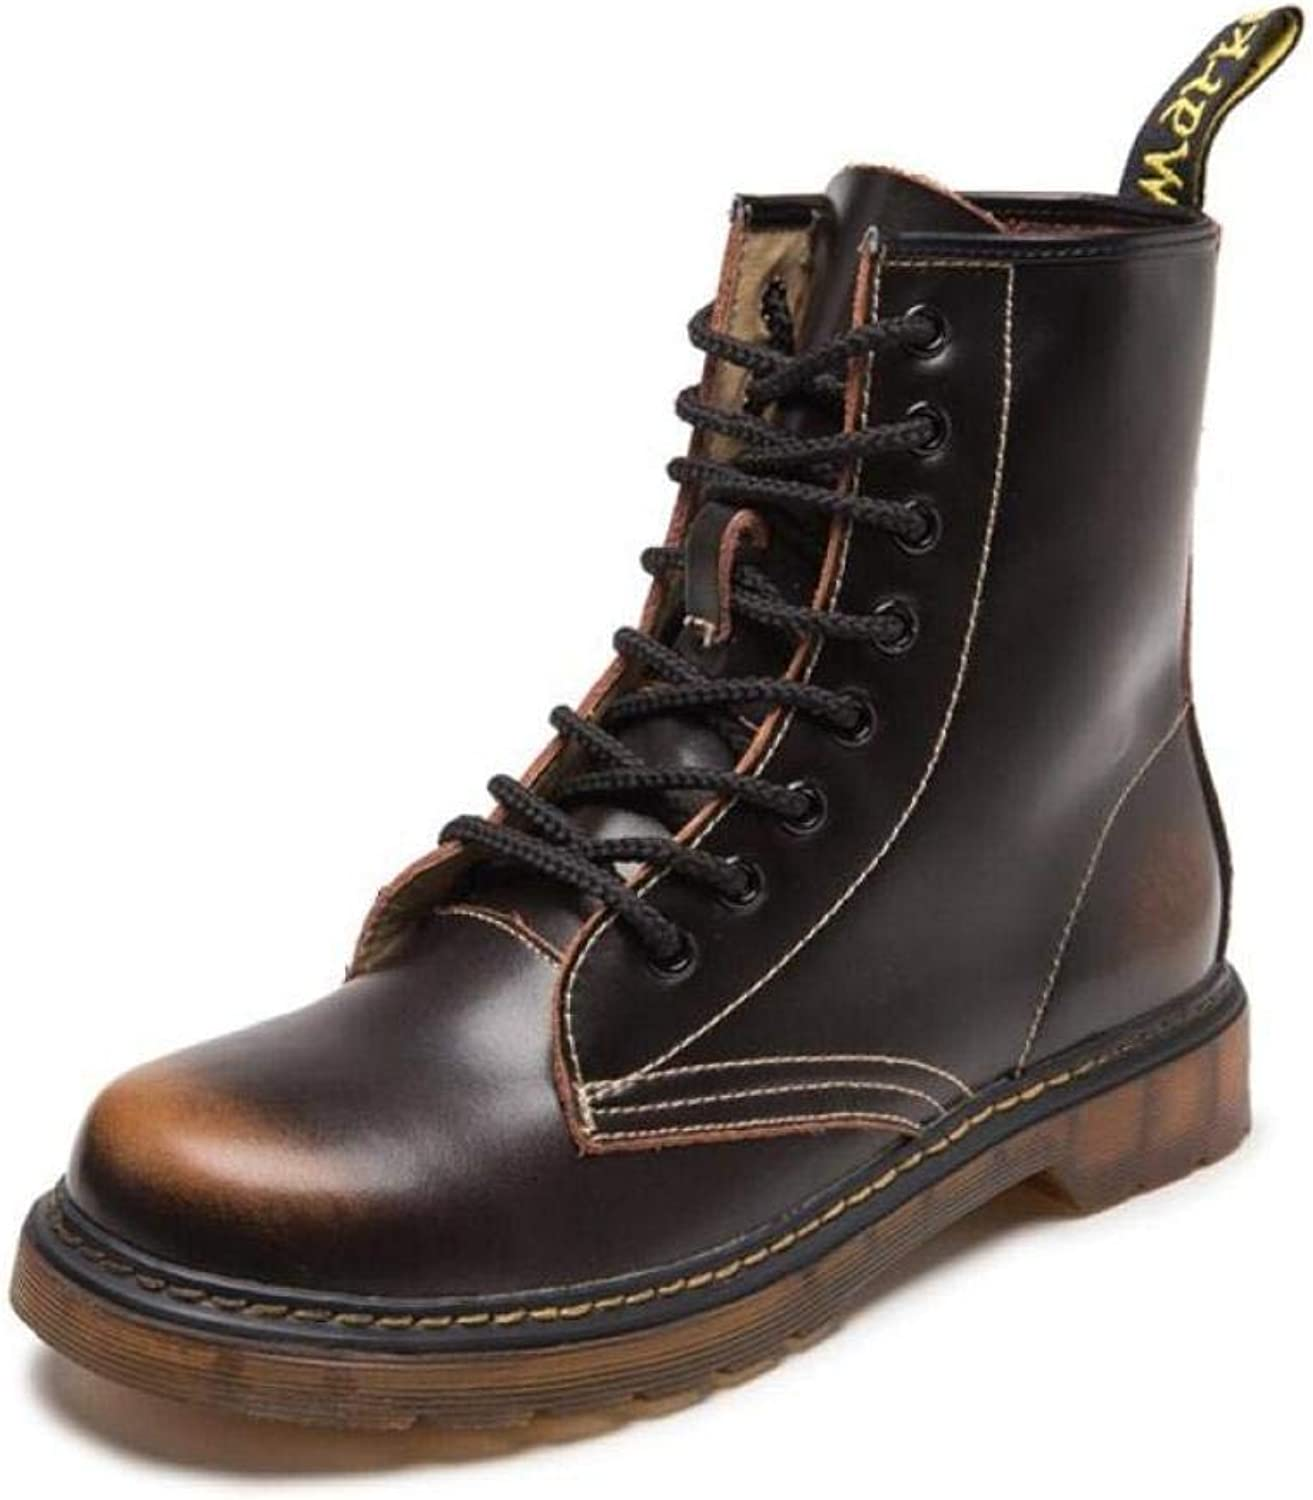 XINGF Men's High-top Martin Boots, Black British Retro Leather Boots, Fashion Trend Couple Boots, Autumn and Winter Non-Slip Warm shoes